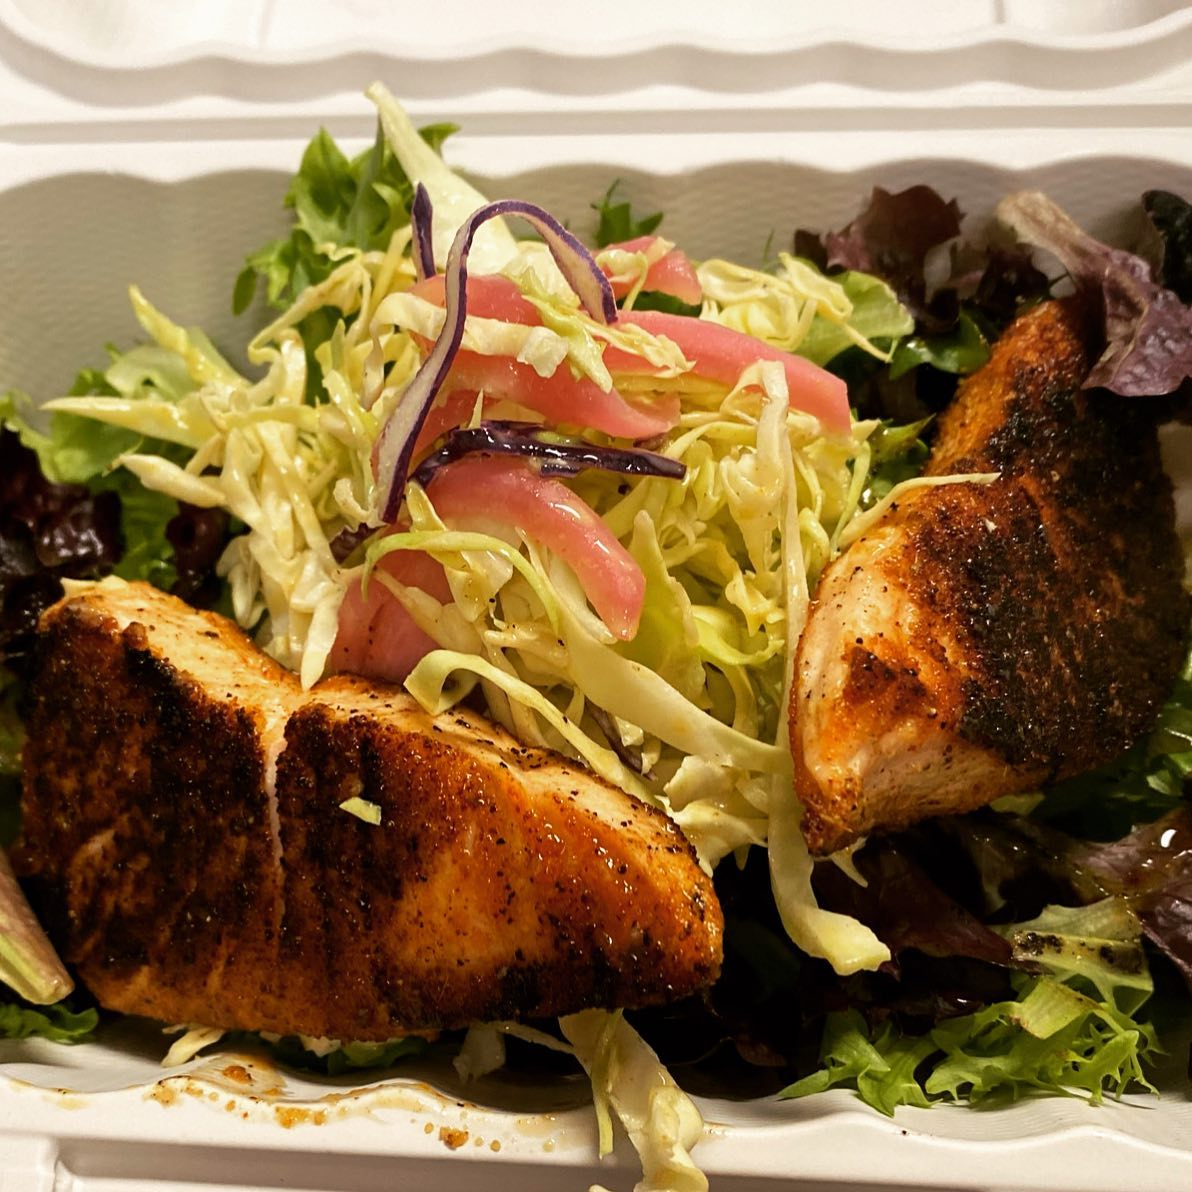 grilled salmon on top of mixed greens